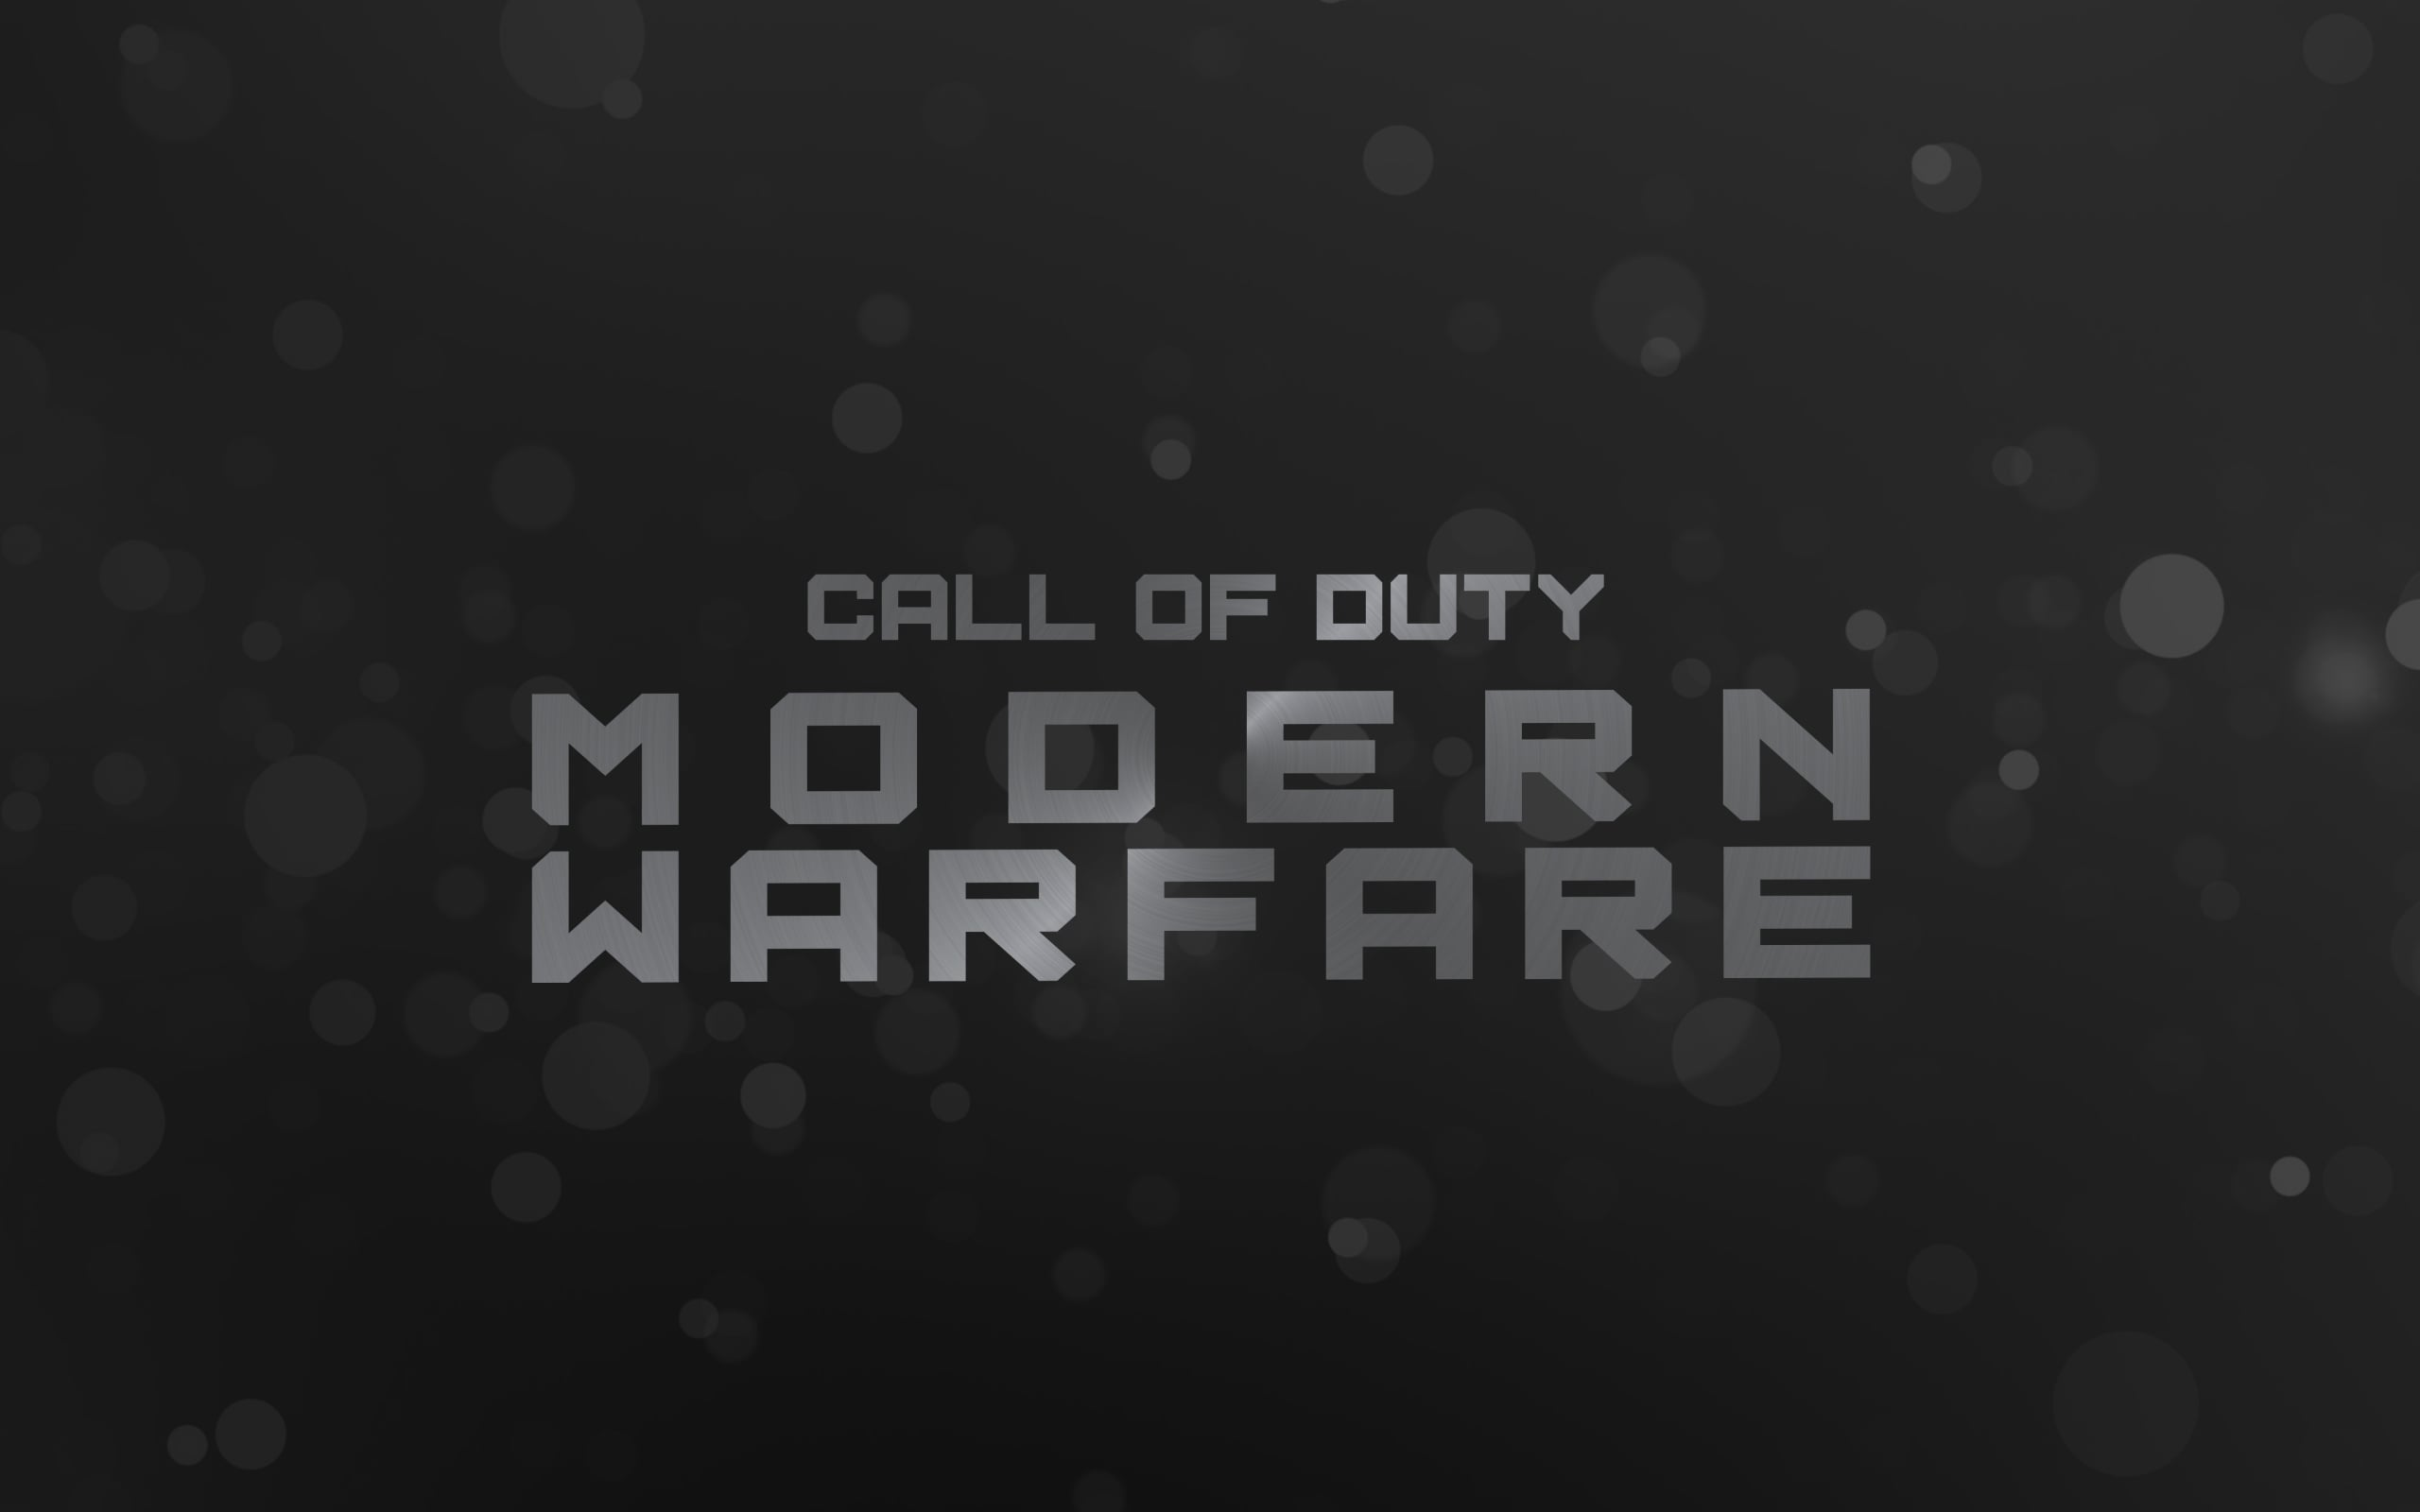 Wallpaper Of Video Game Call Of Duty Modern Warfare Mw4